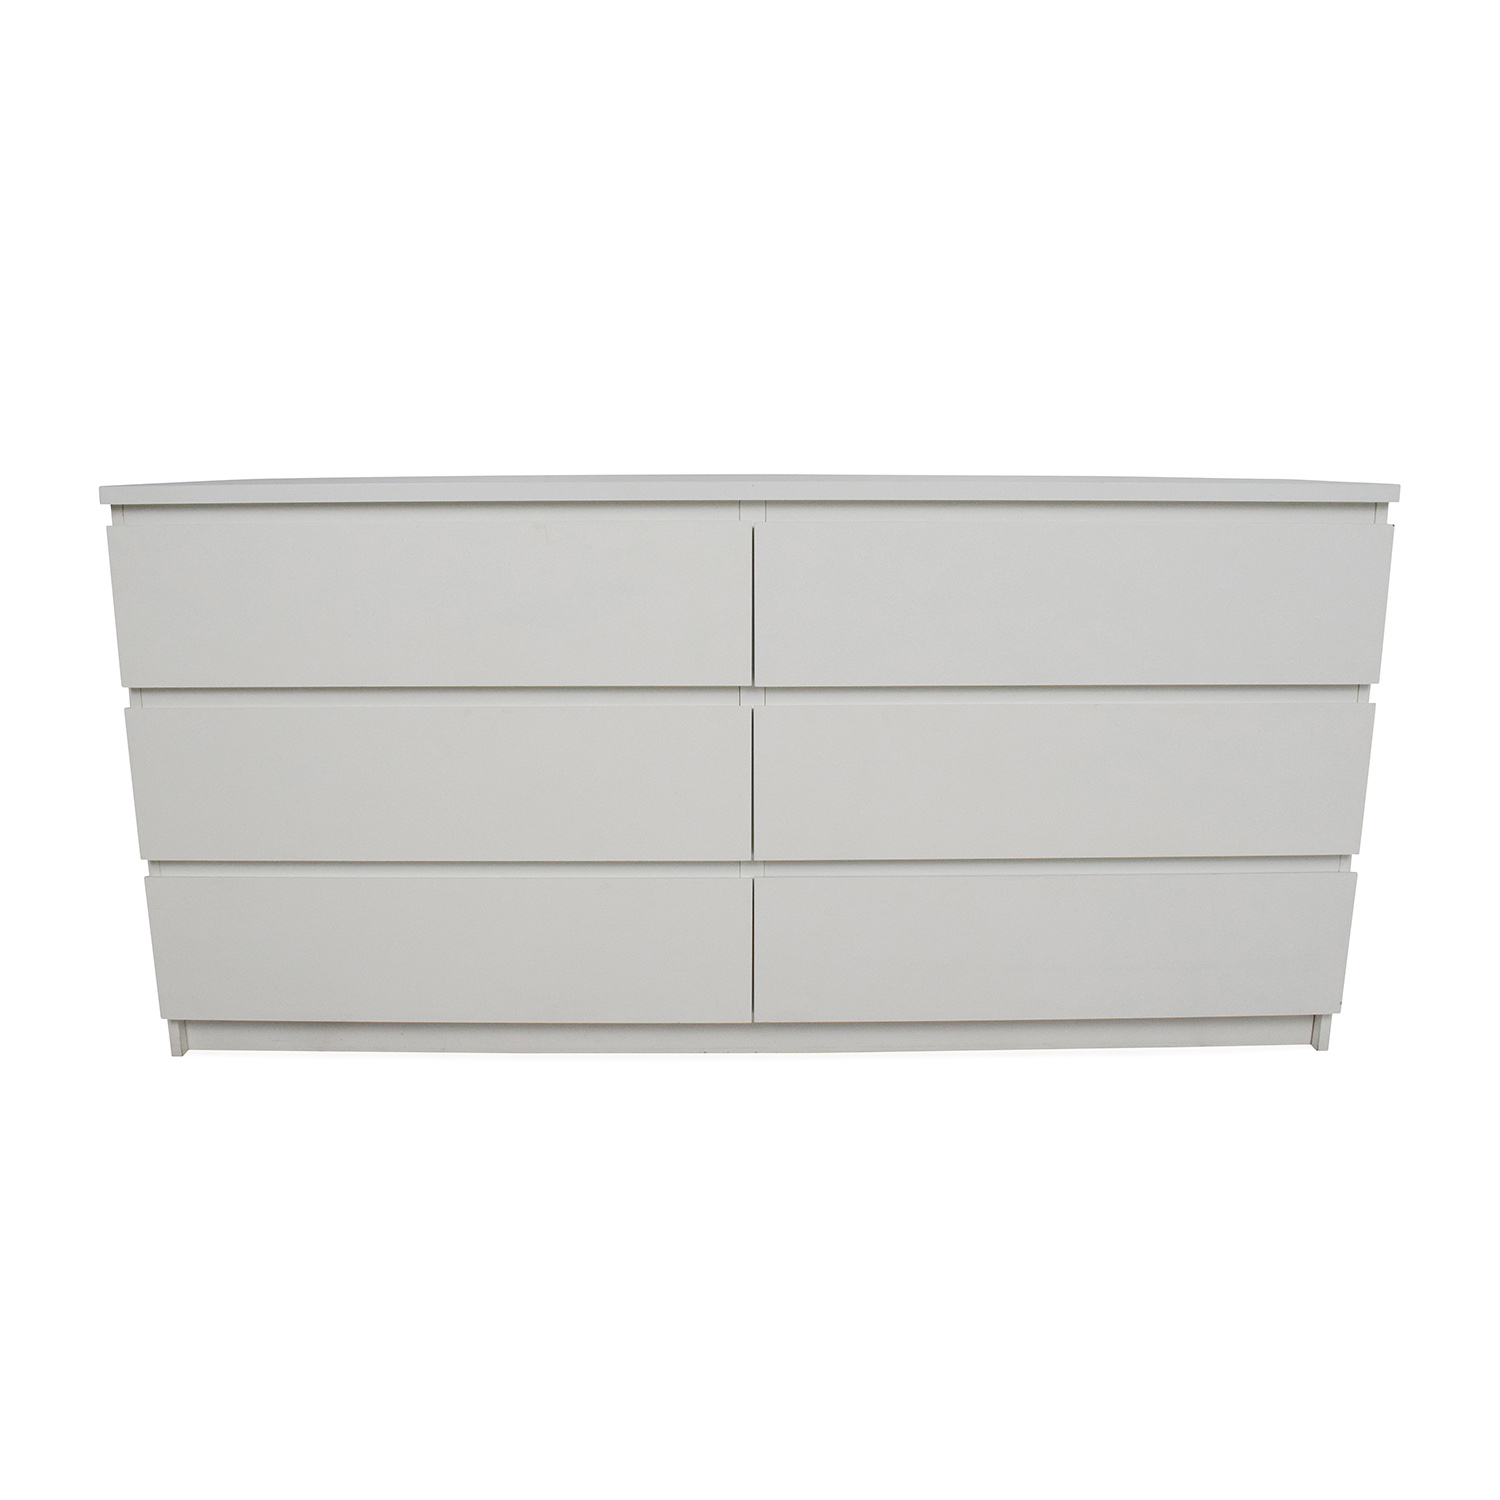 IKEA Six Drawer Dresser IKEA